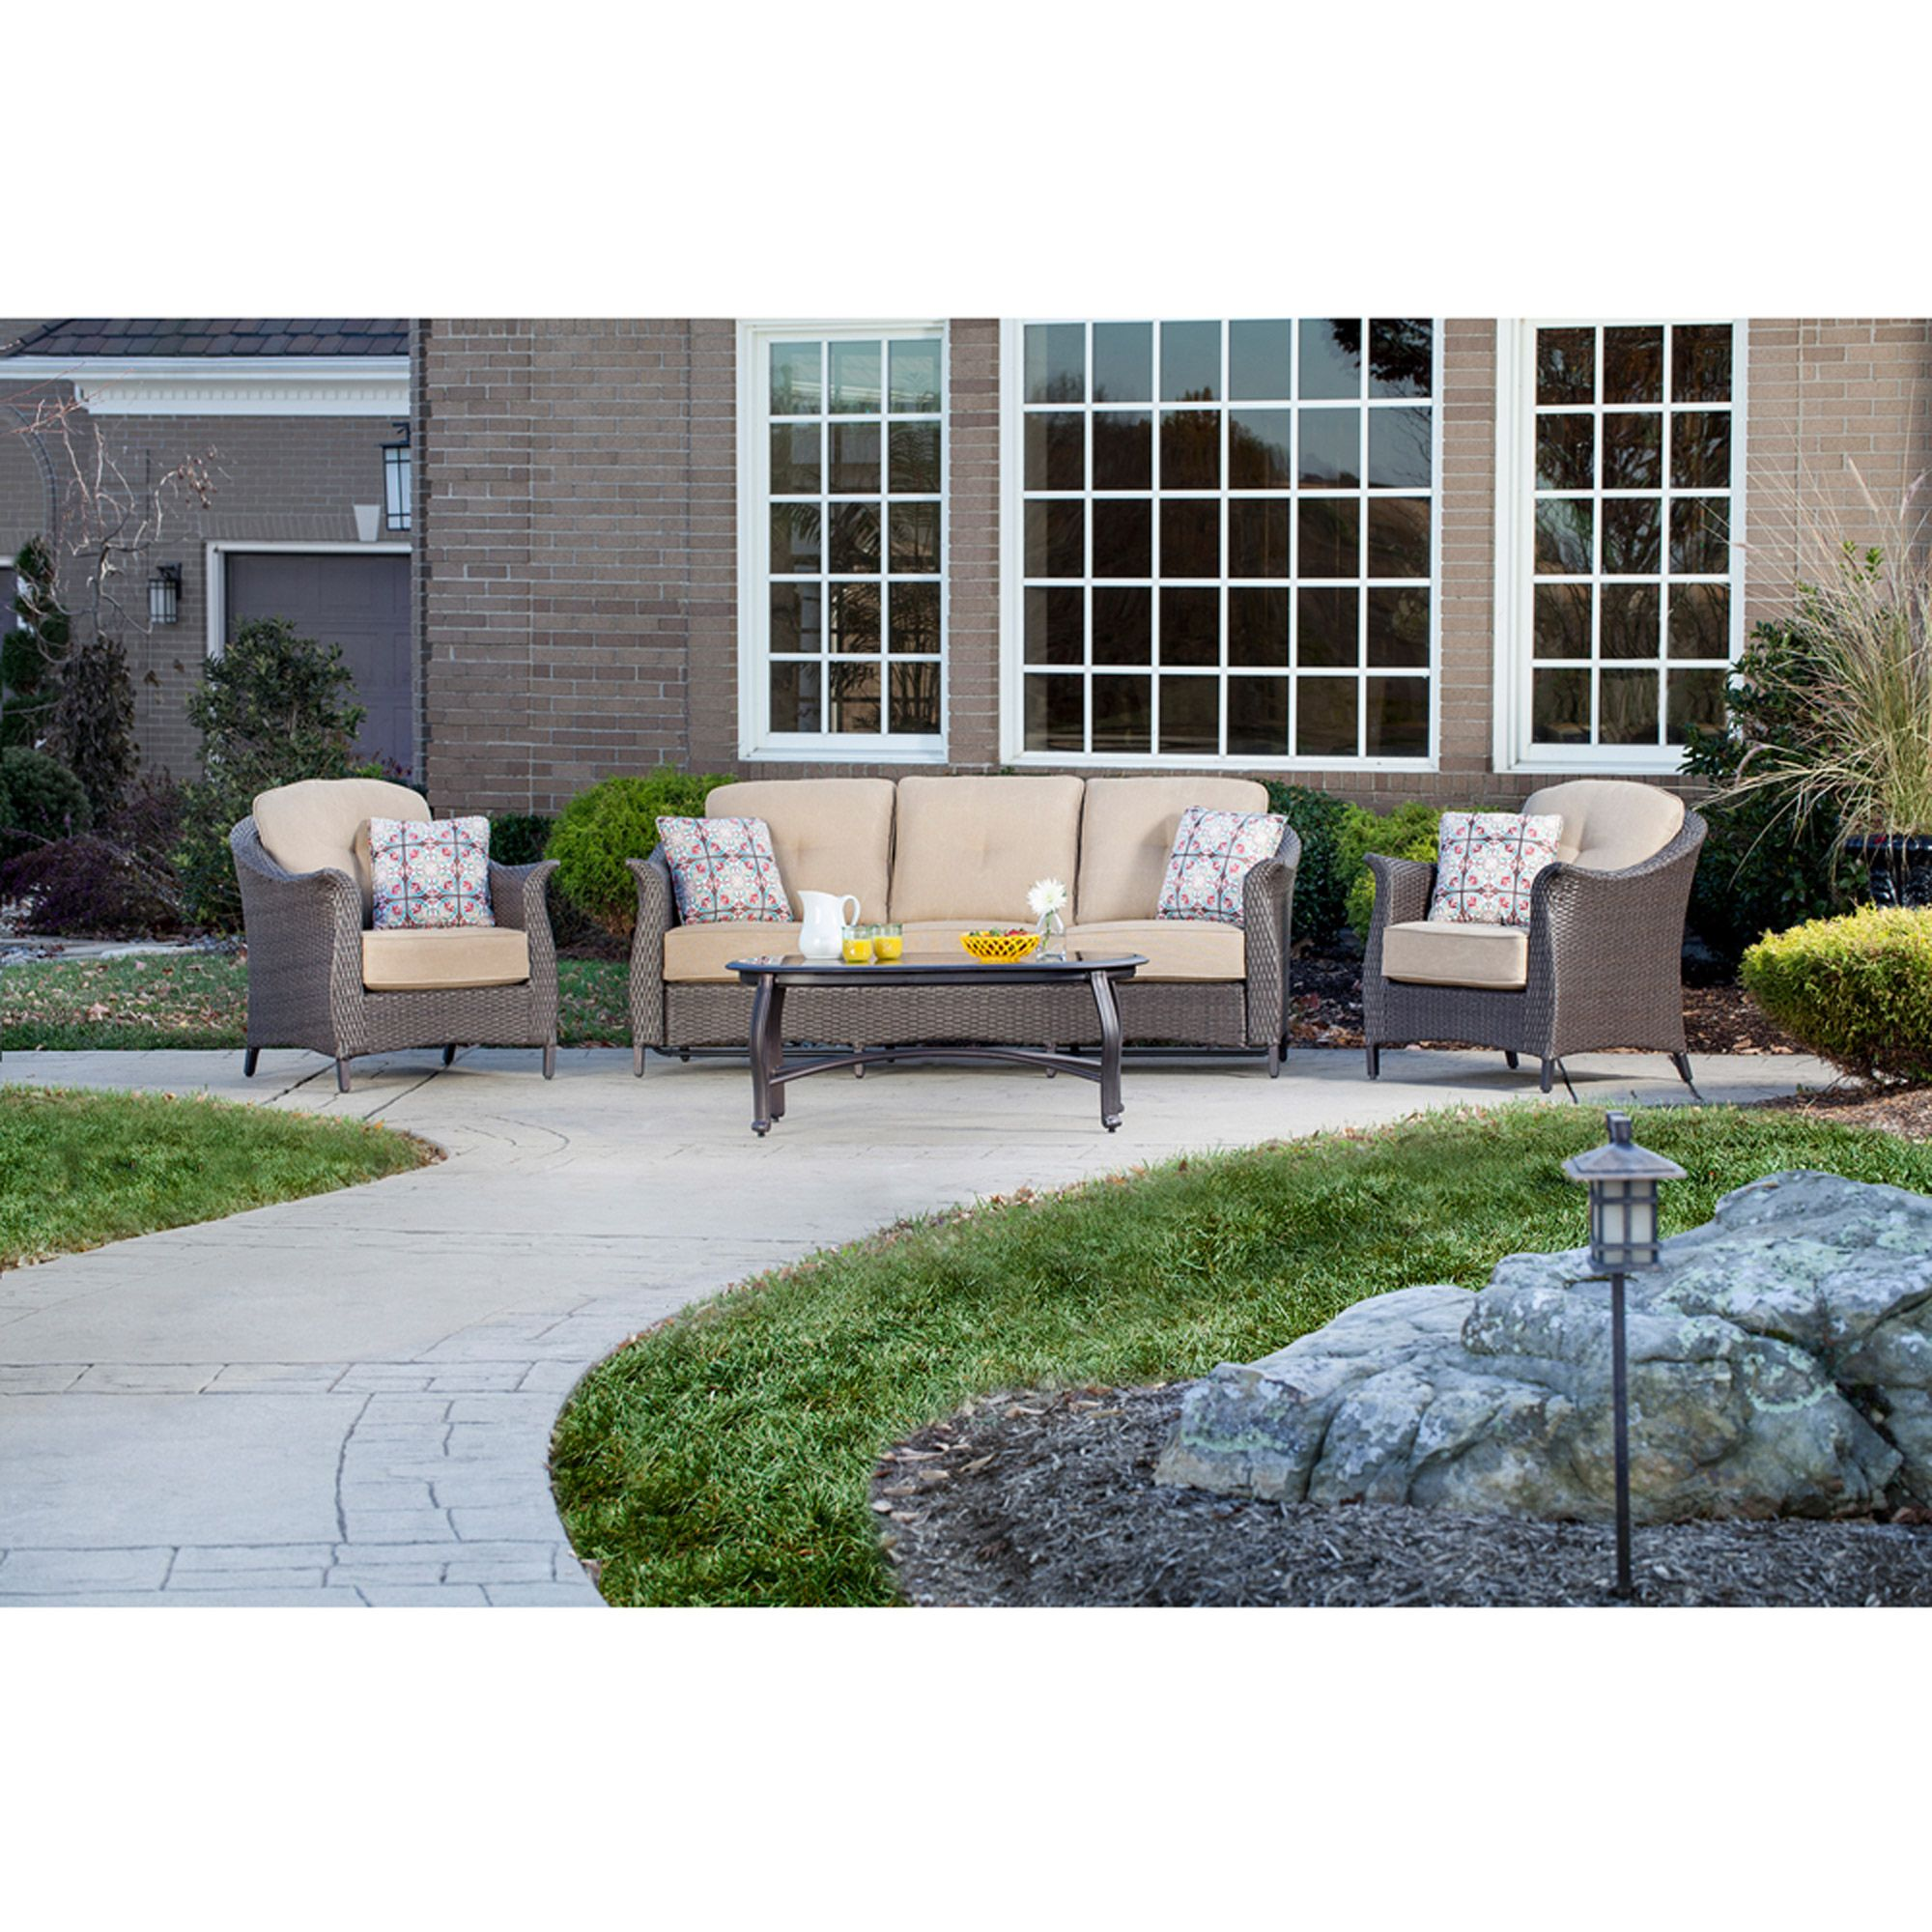 7cc80576527e Better Homes and Gardens Colebrook 4-Piece Outdoor Conversation Set, Seats  5 - Walmart.com